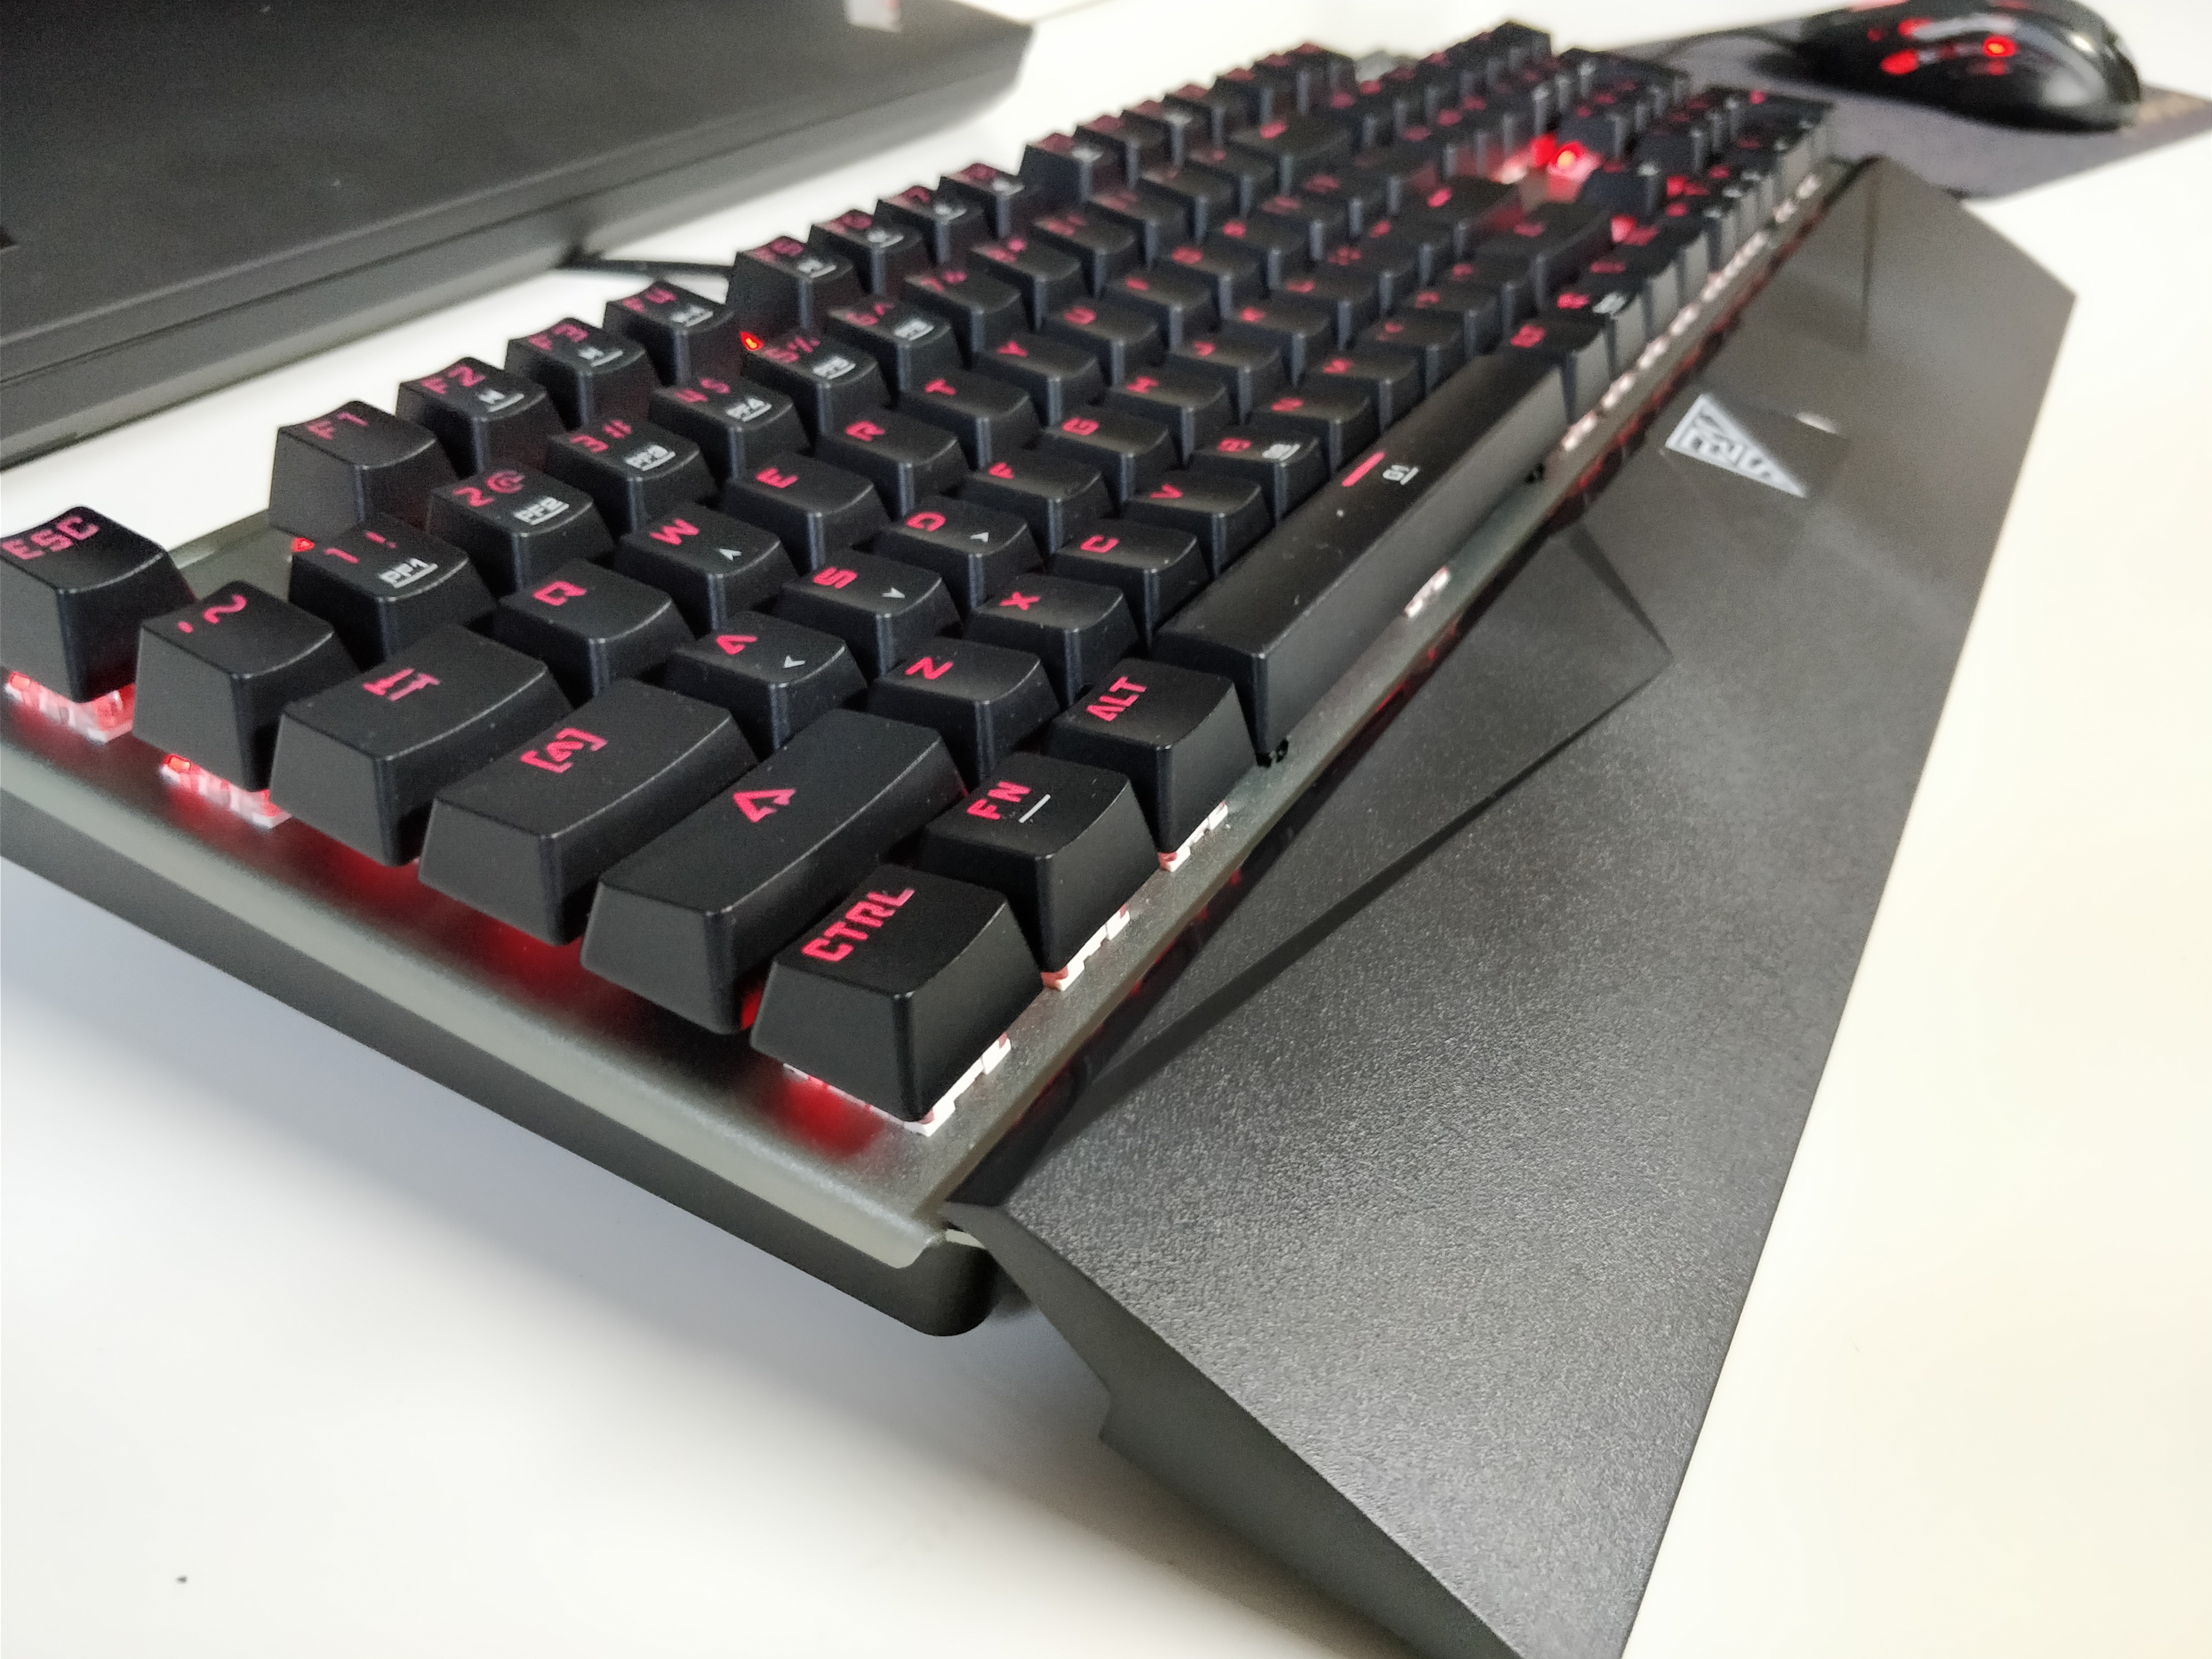 383f438f47d Level Up Your Game With The Gamdias Hermes E1 Mechanical Keyboard ...